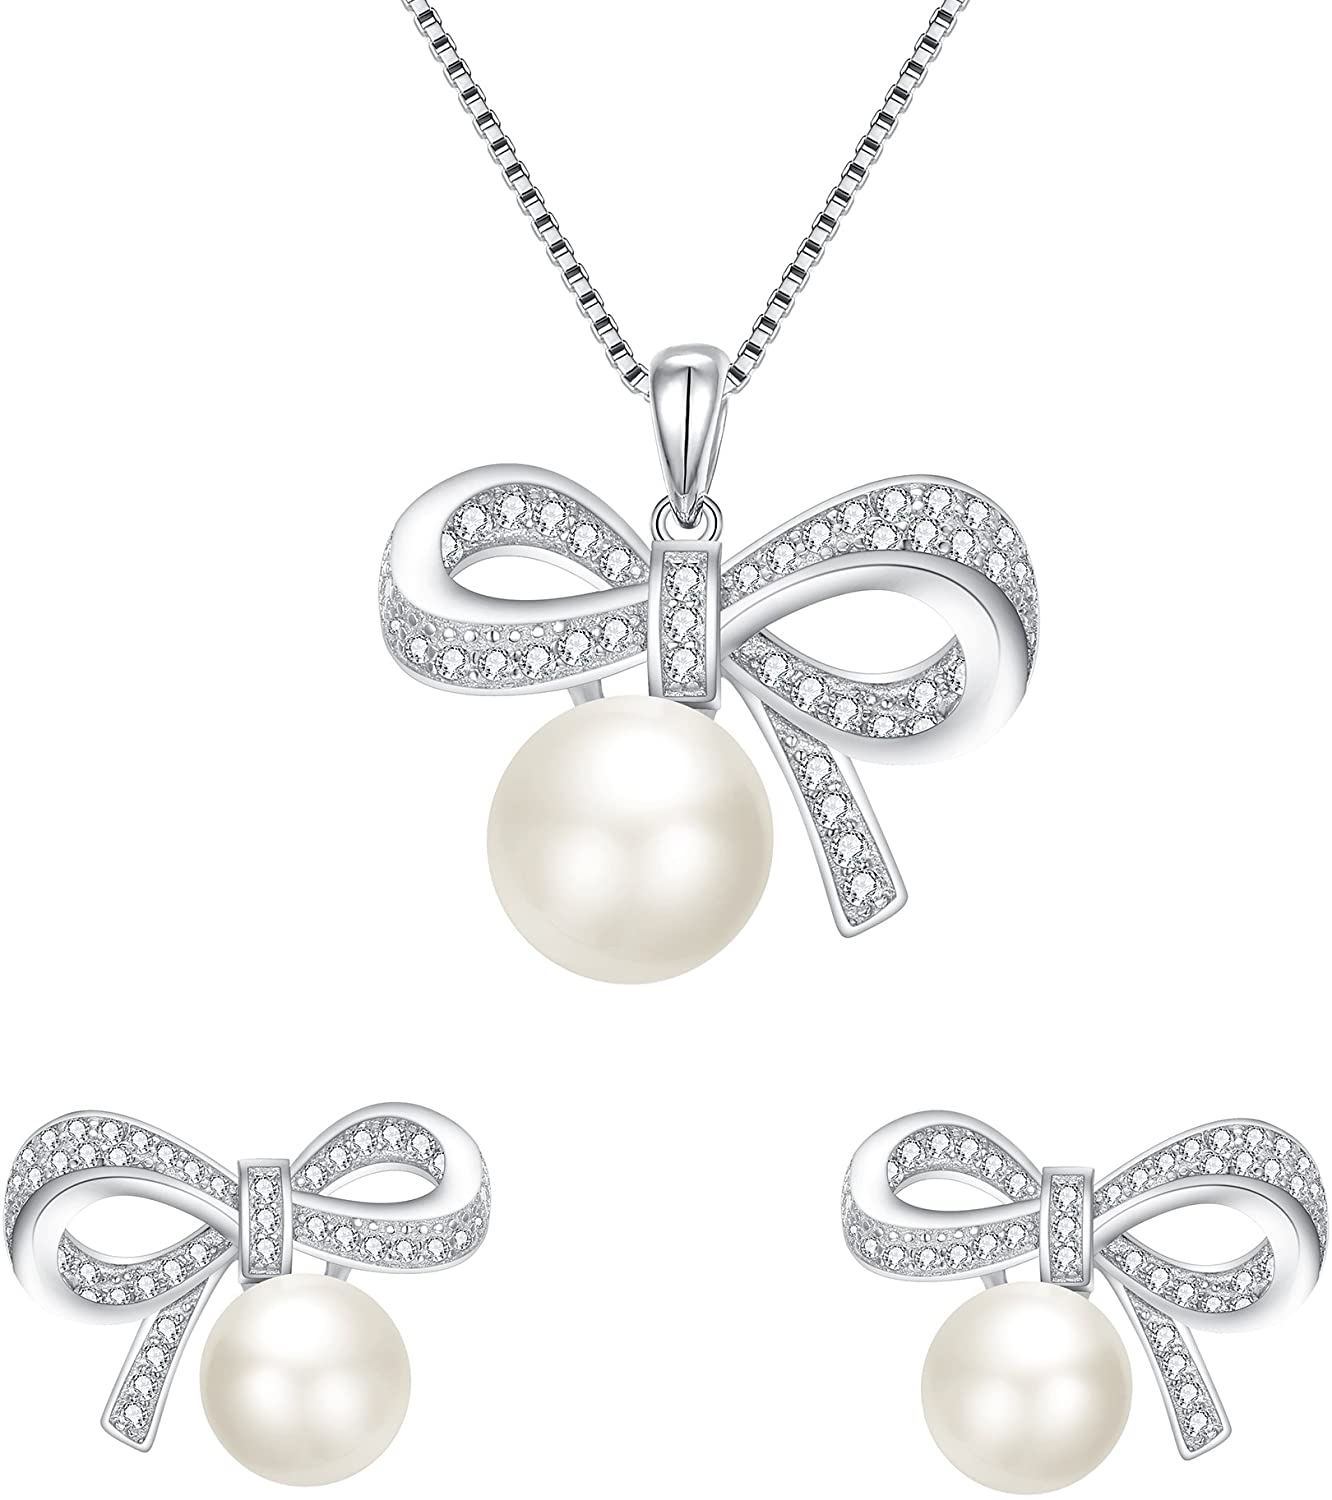 BriLove Women 925 Sterling Silver CZ AAA Freshwater Cultured Pearl Necklace Earrings Set